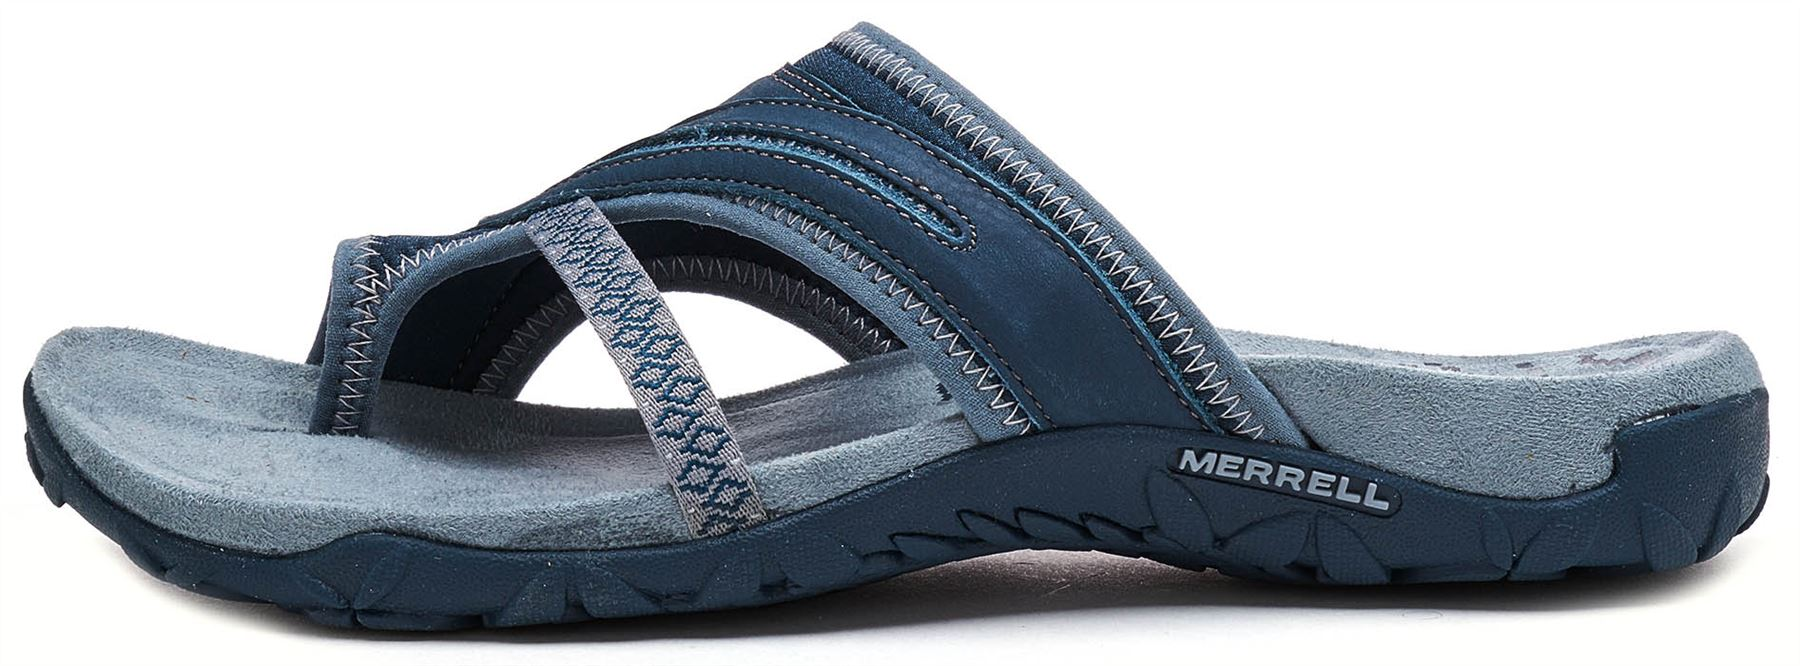 2d1d1c64c312 Details about Merrell Terran Post II Women Sandals in Slate Blue J98750